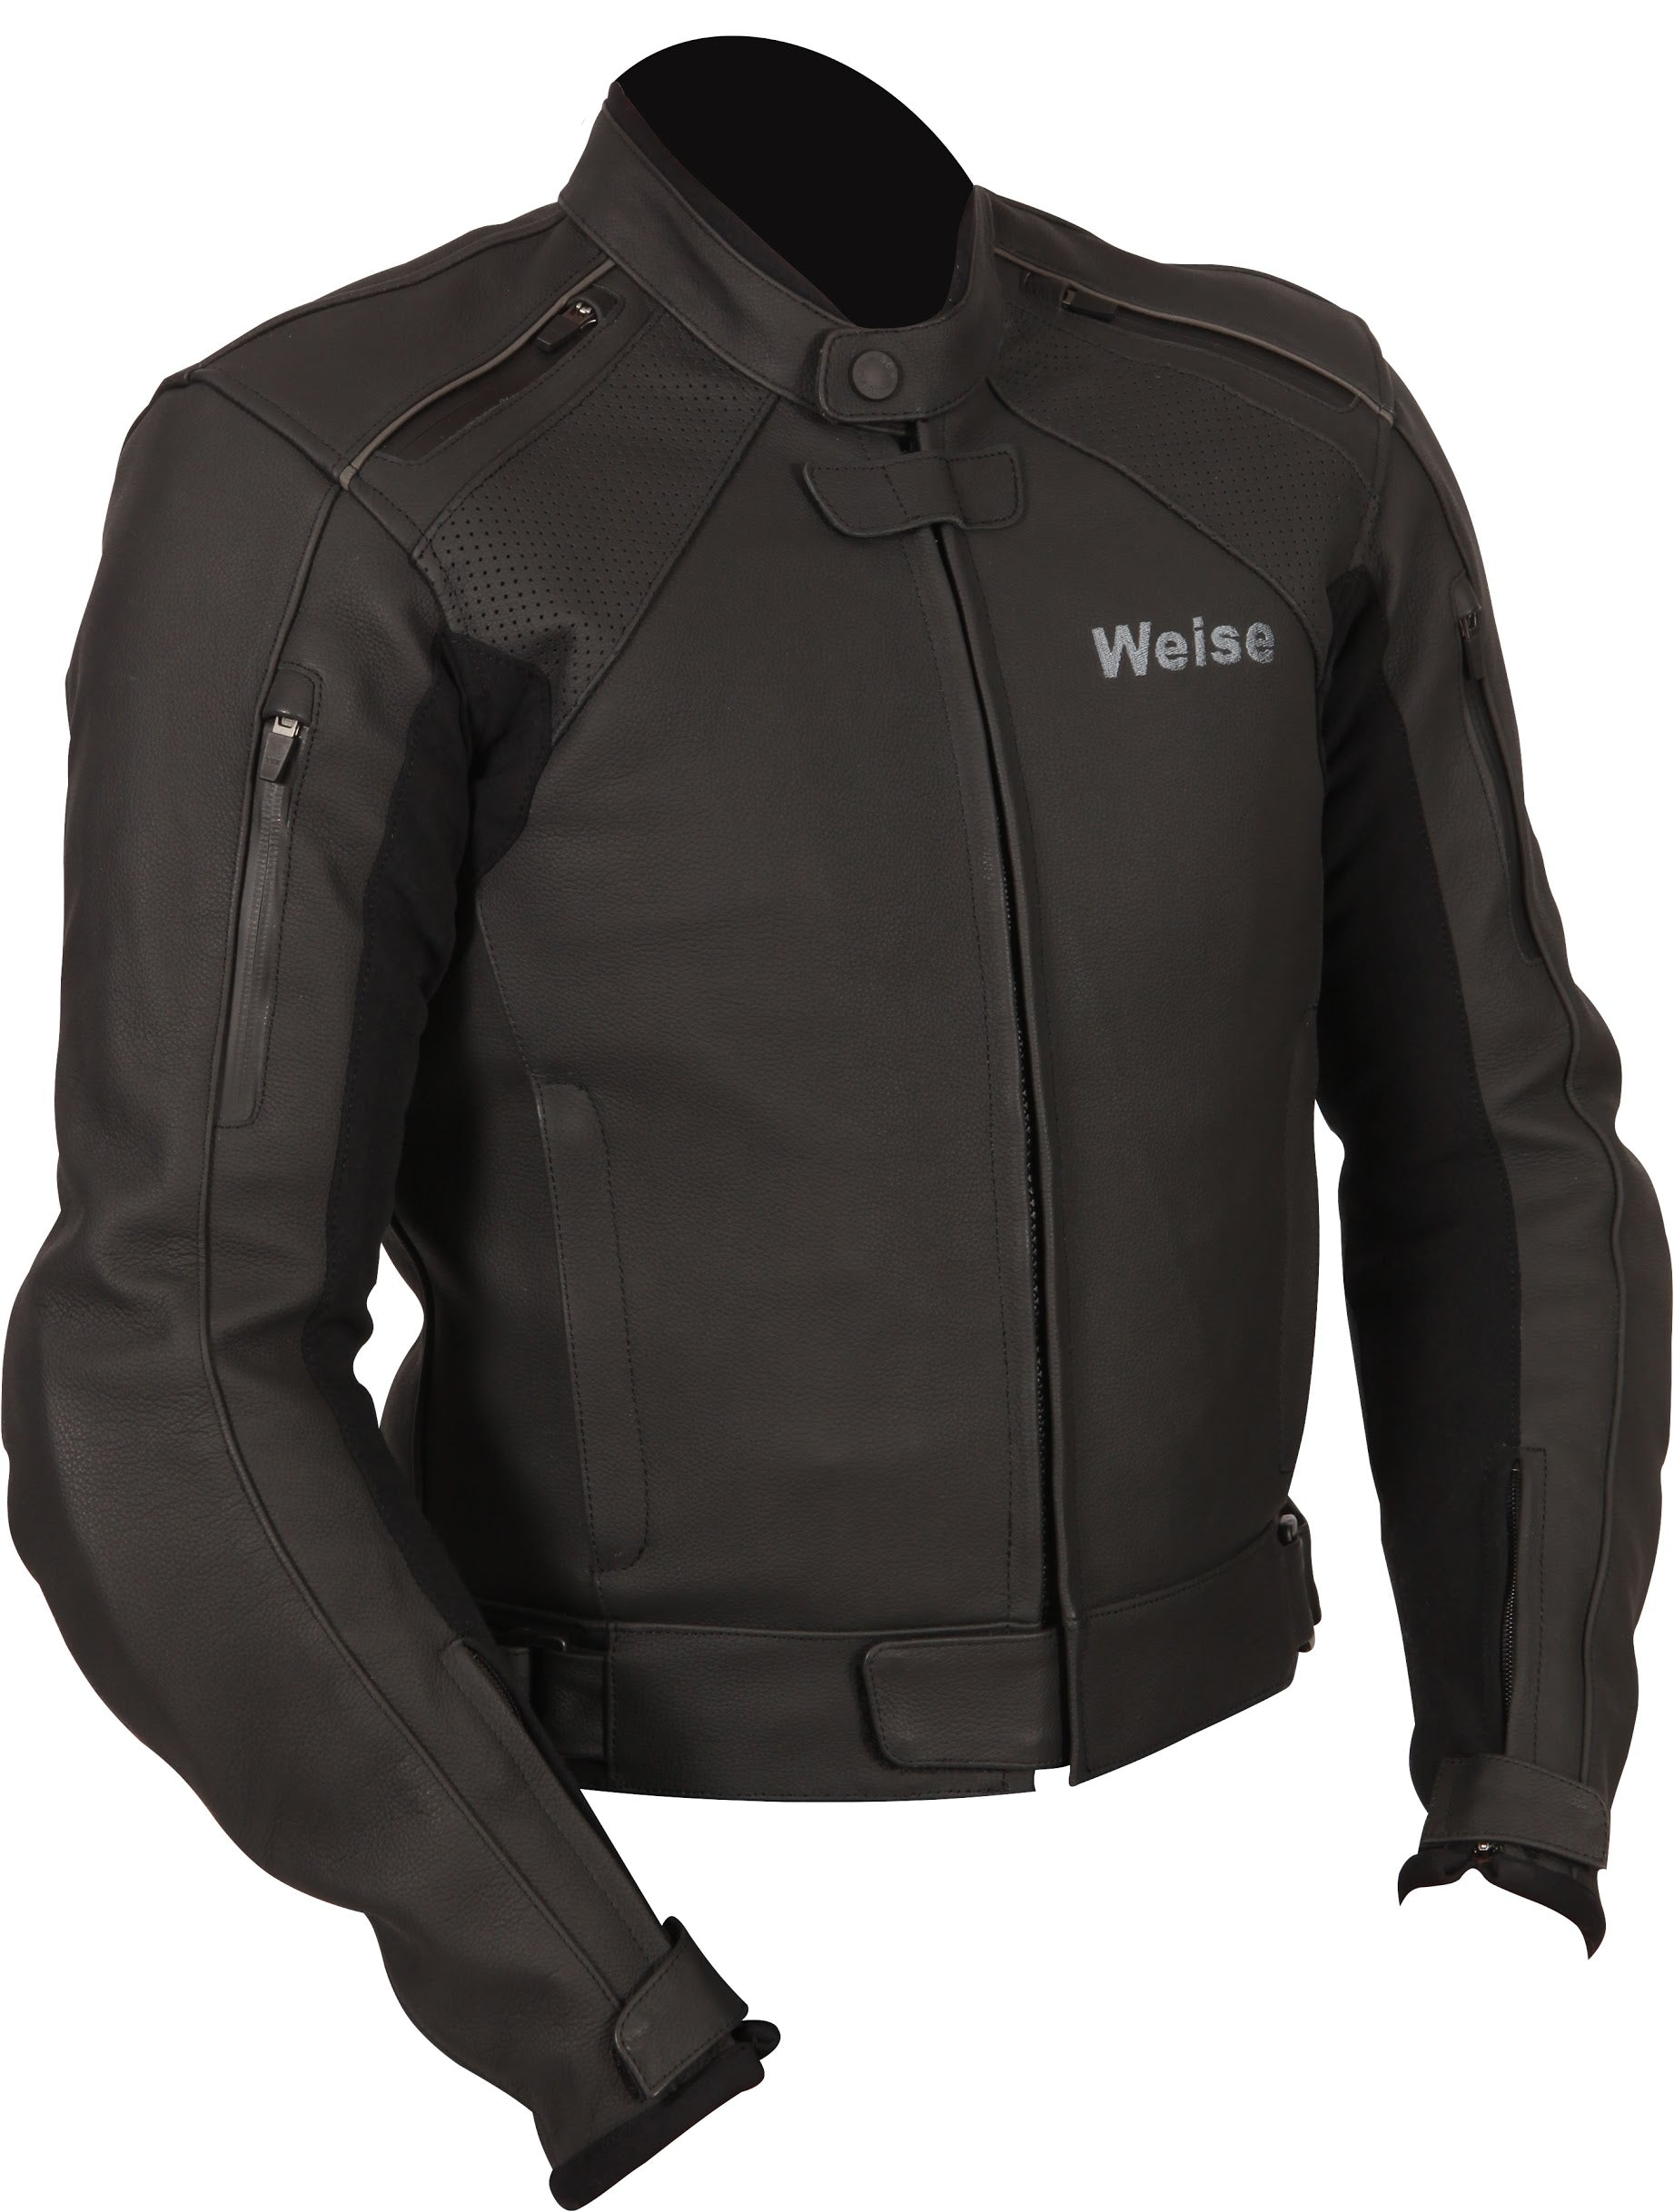 Hydra, Leather Jacket, Weise - Averys Motorcycles